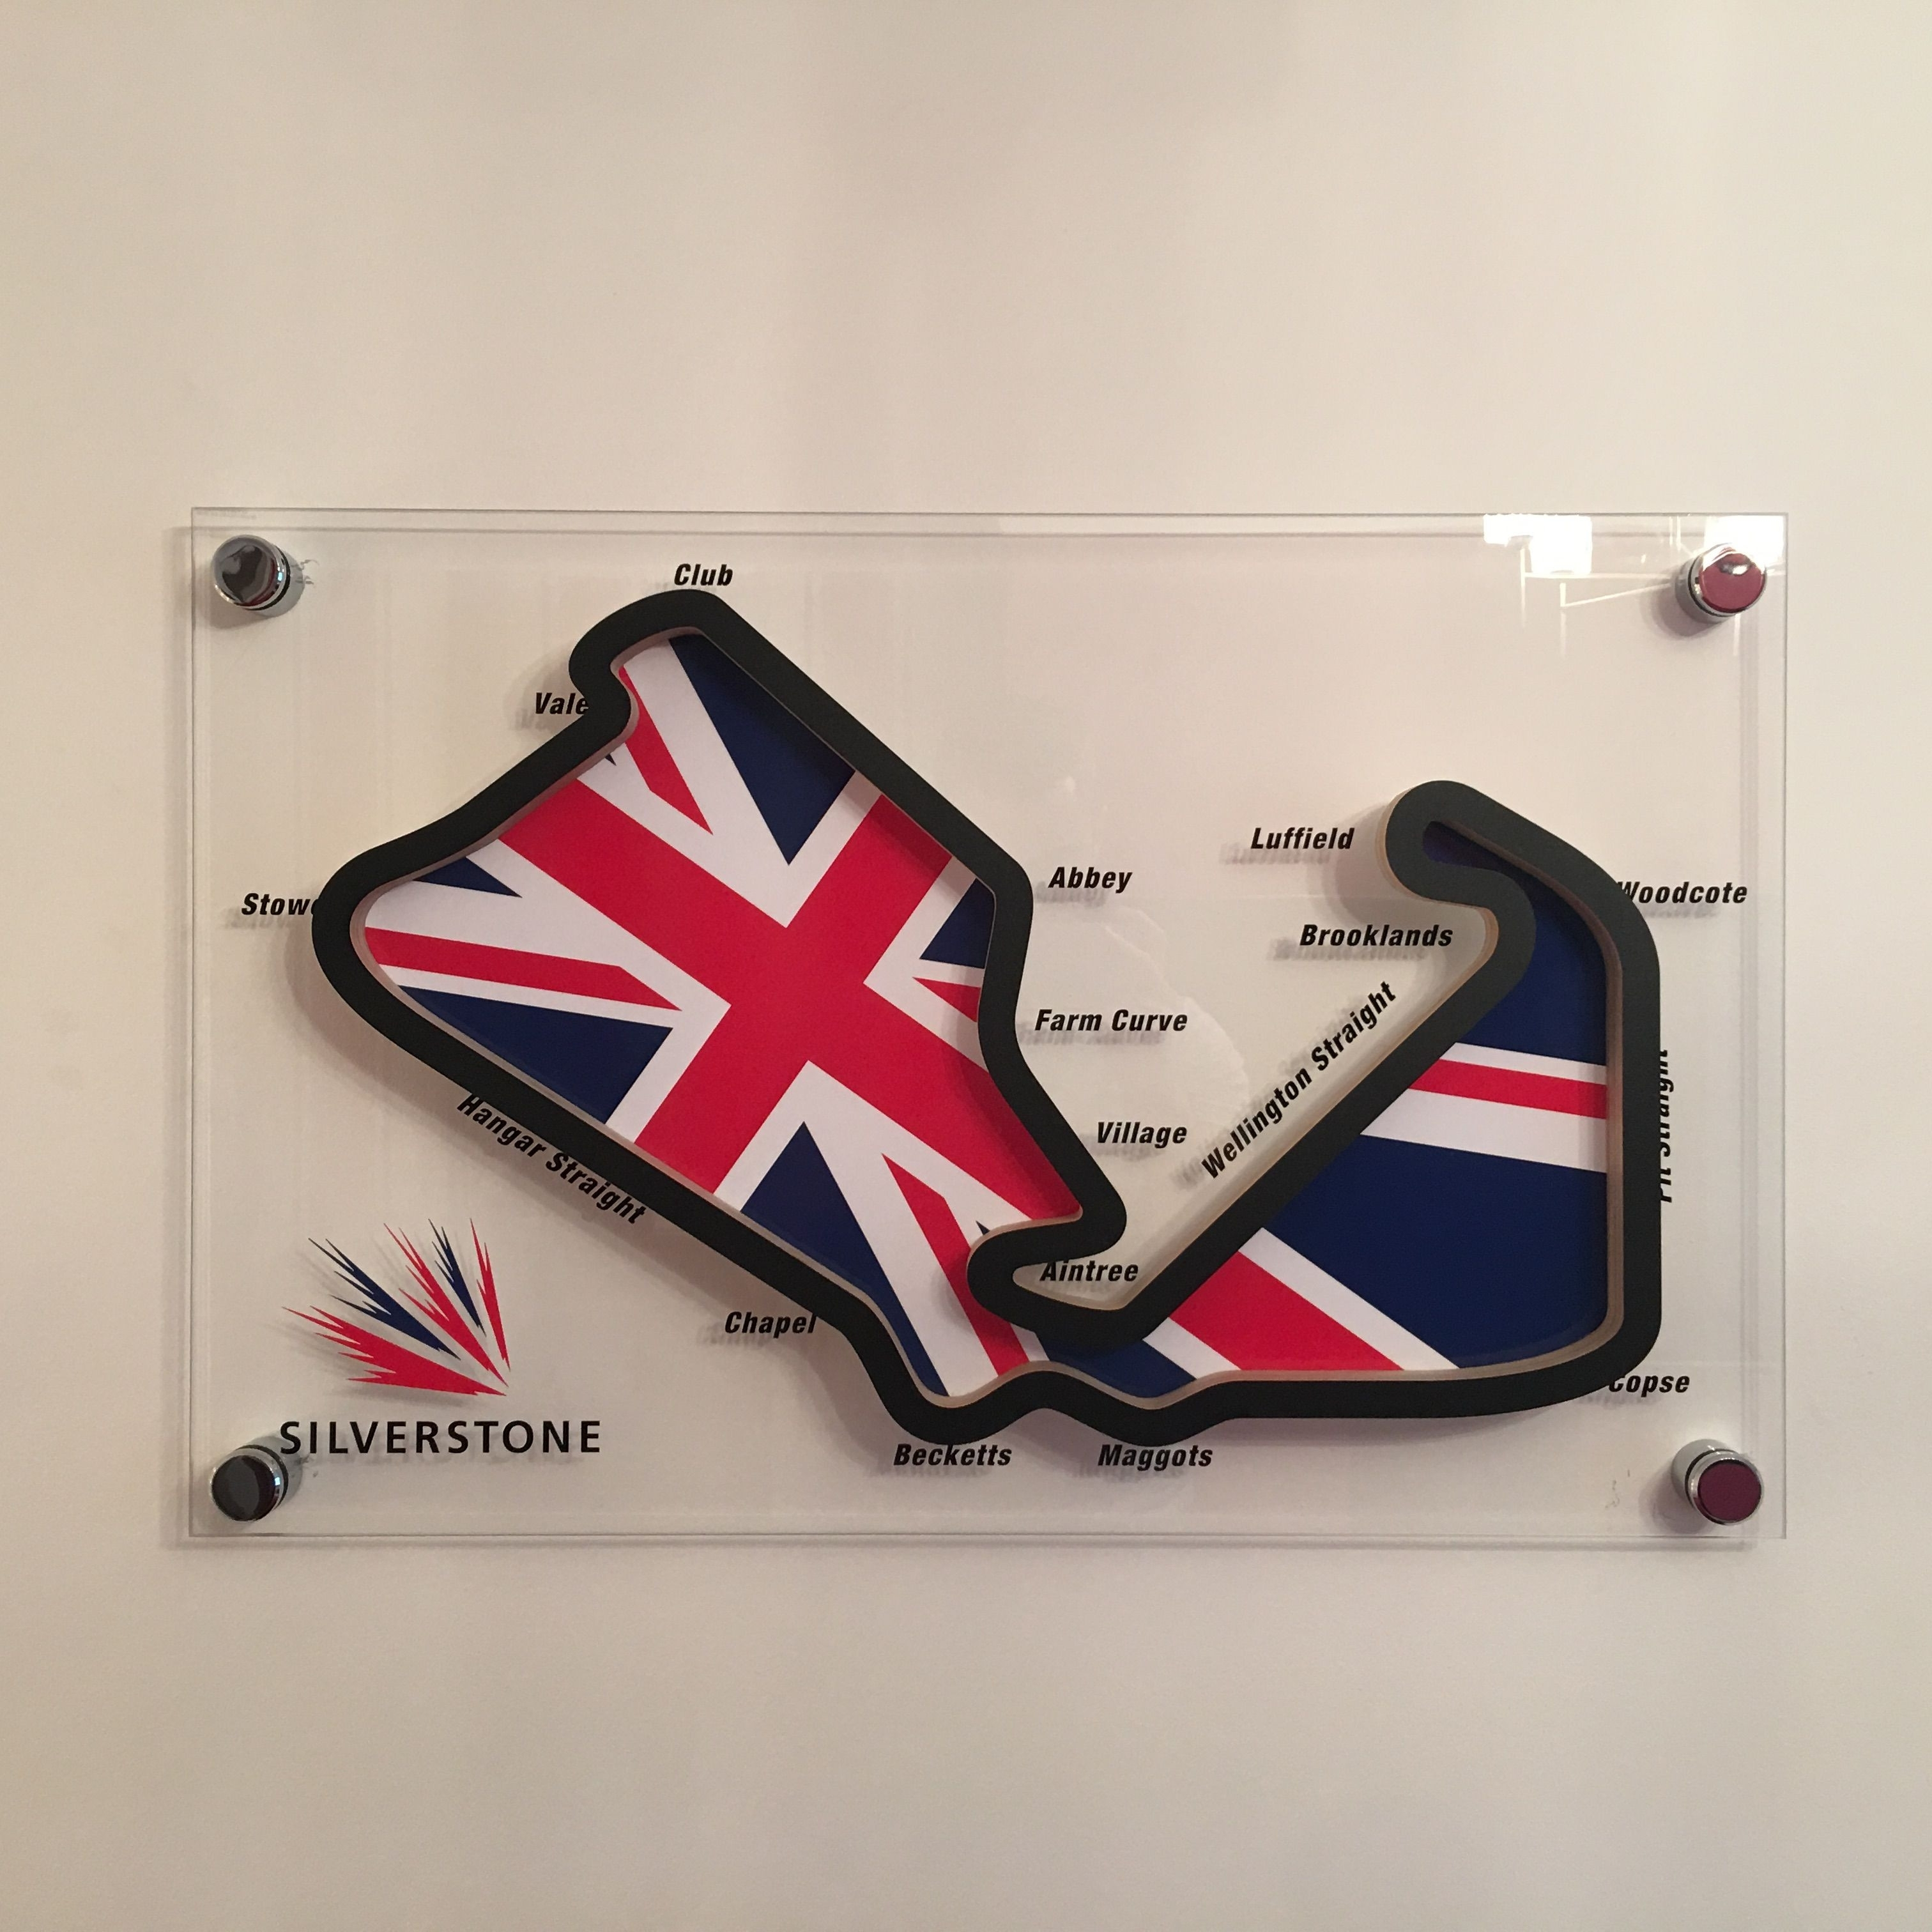 F1 Track Art Using 4 6Mm Toughened Glass With A Cnc Track Cut Out Of Pertaining To Recent Race Track Wall Art (Gallery 16 of 20)